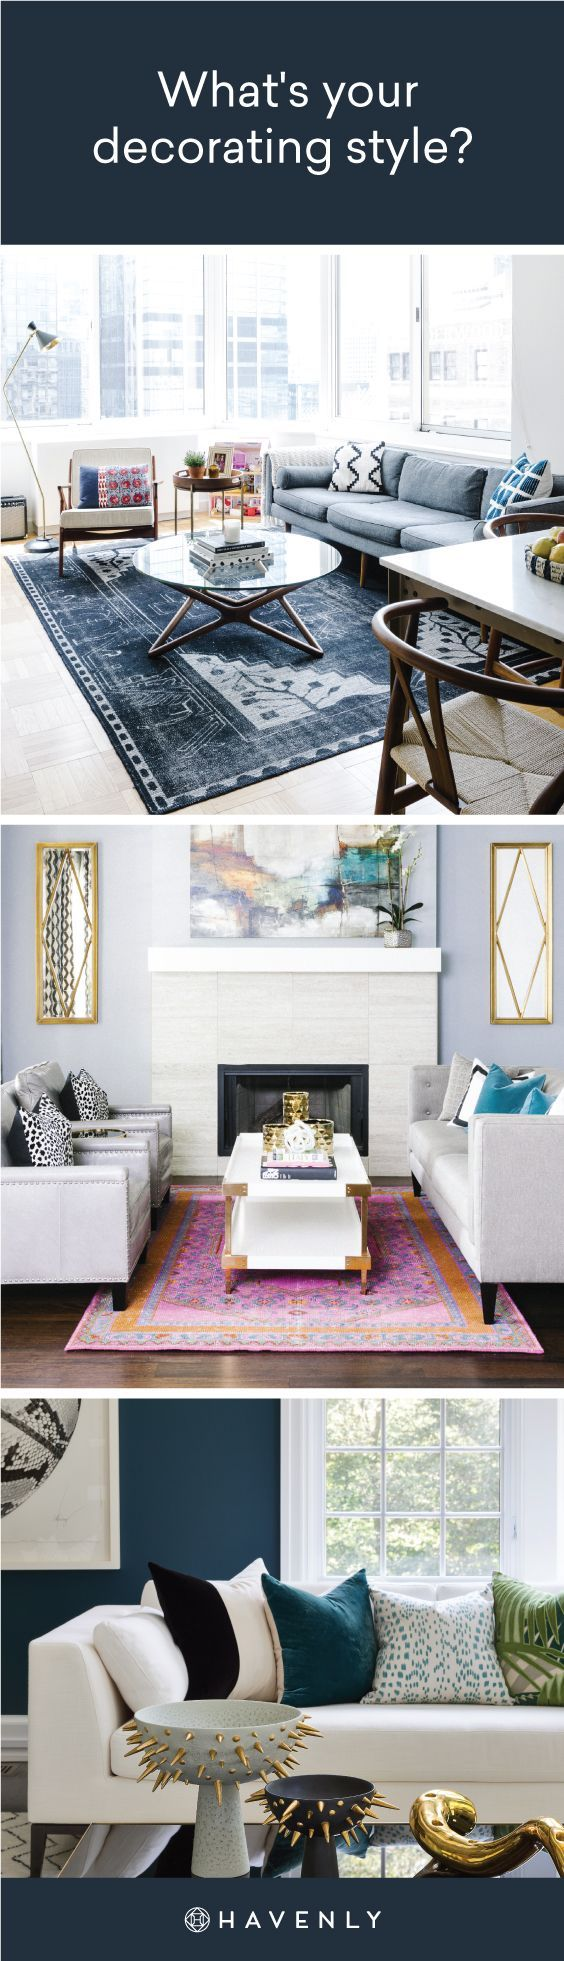 Want To Know Your Unique Decorating Style Take Havenly S Interior Design Decorating Quiz To Find Your Design Styl Home Decor Apartment Decor House Interior